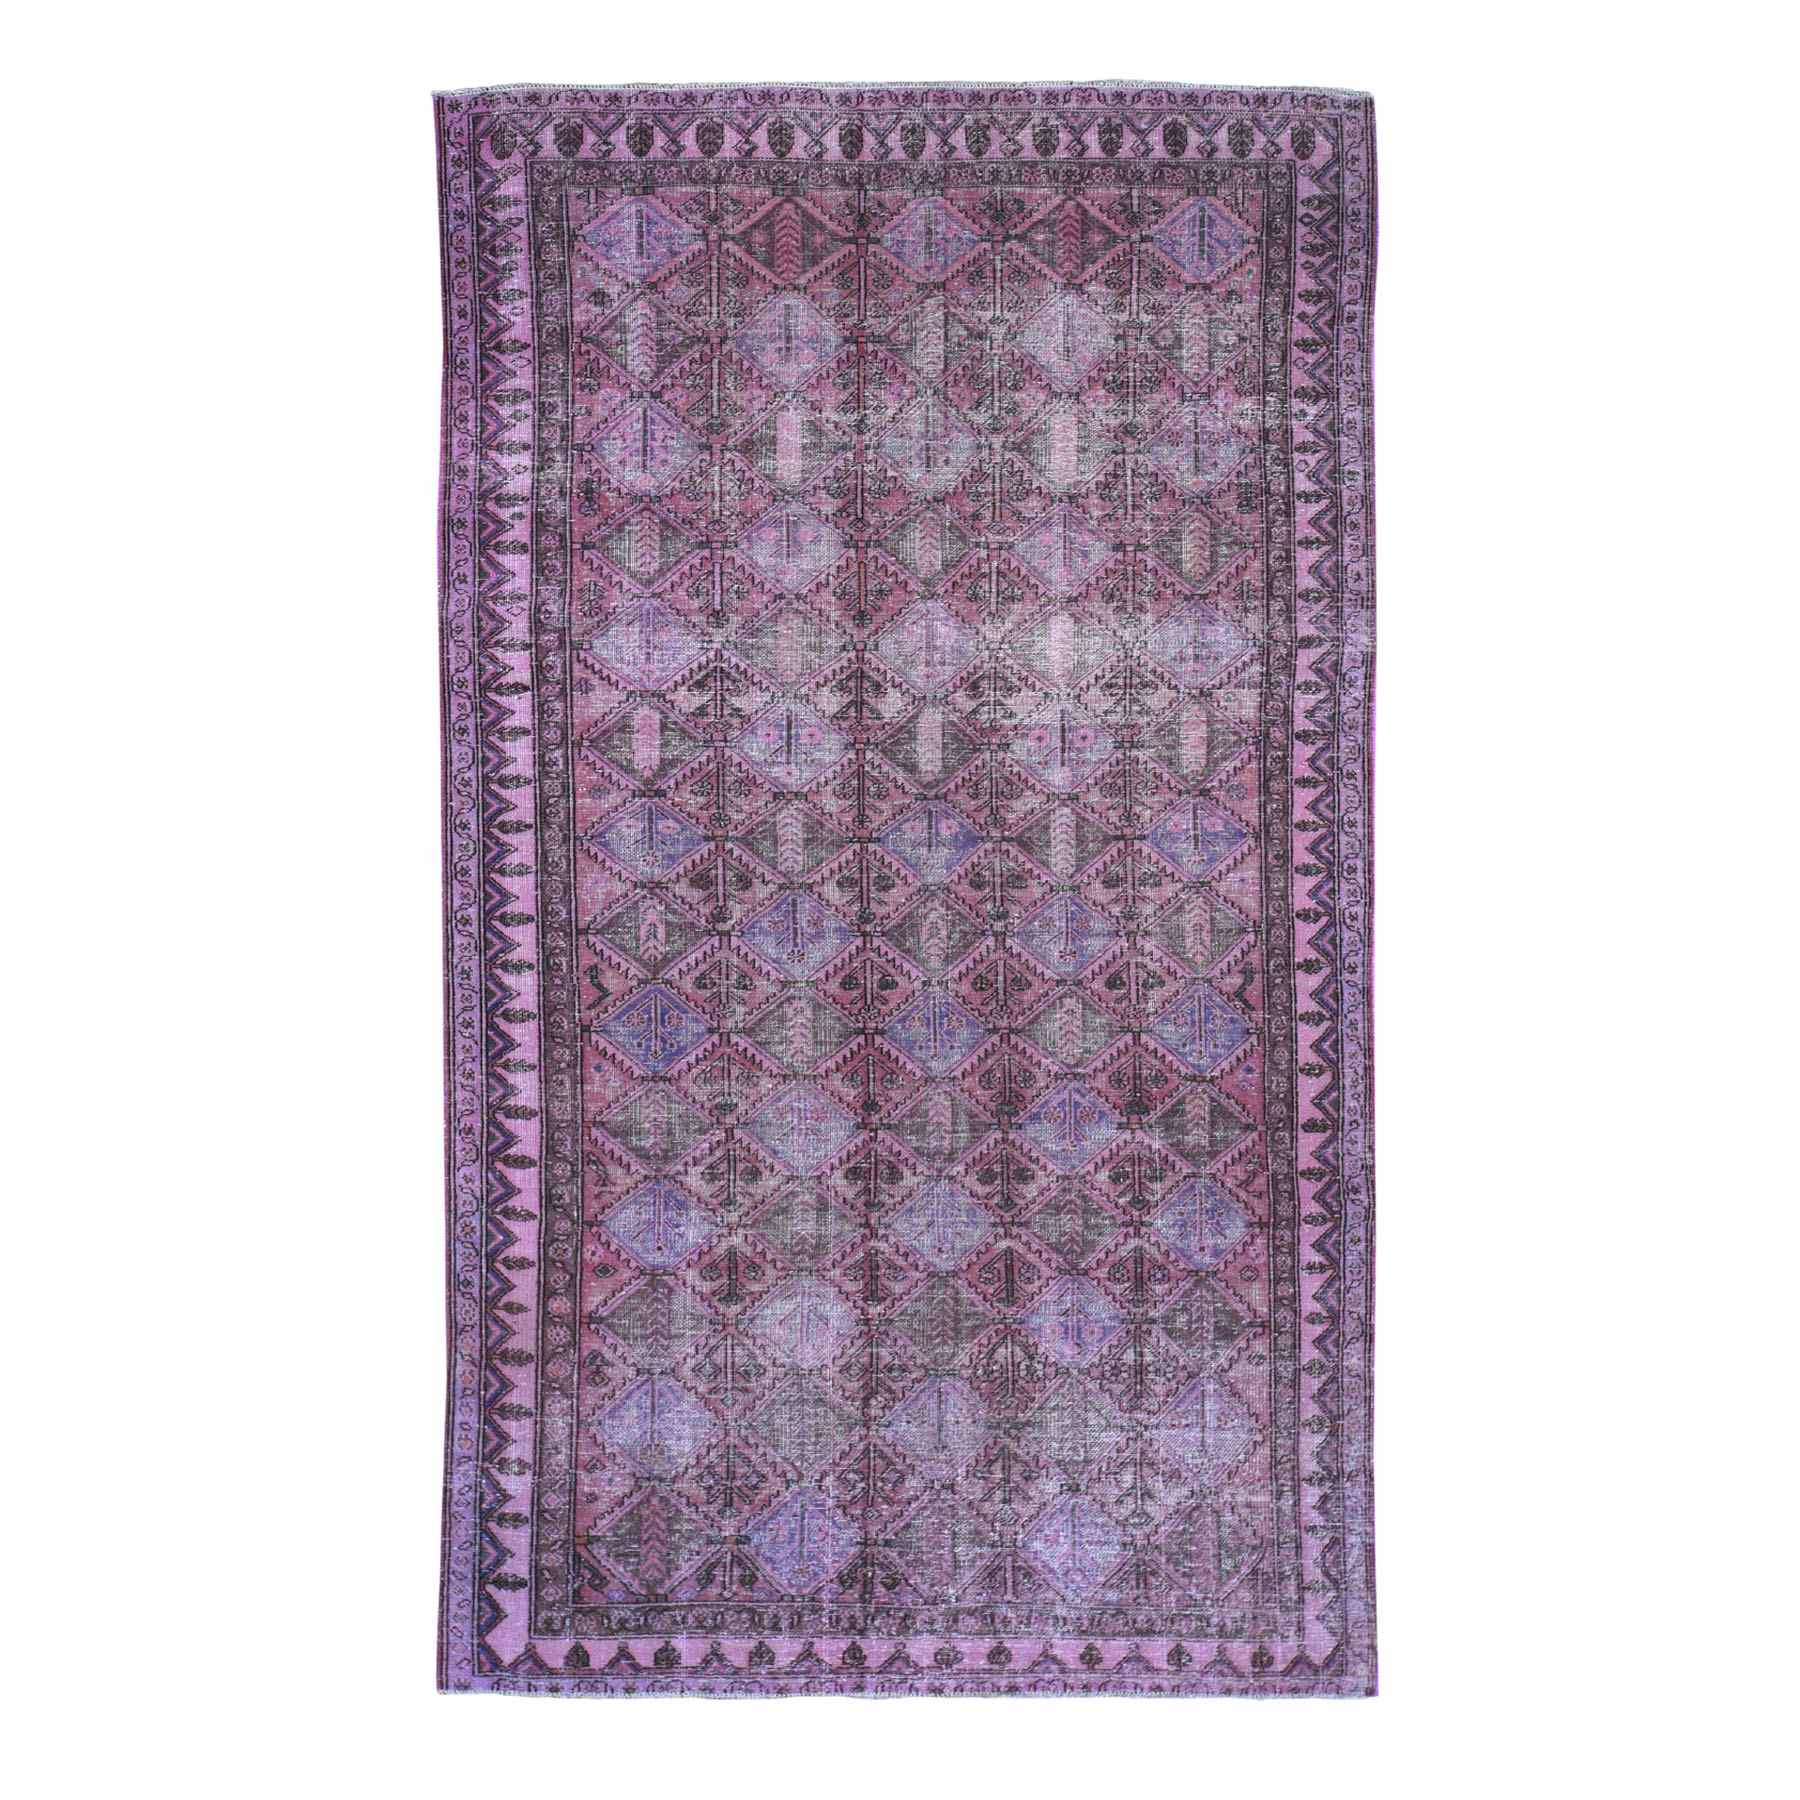 Overdyed-Vintage-Hand-Knotted-Rug-236895